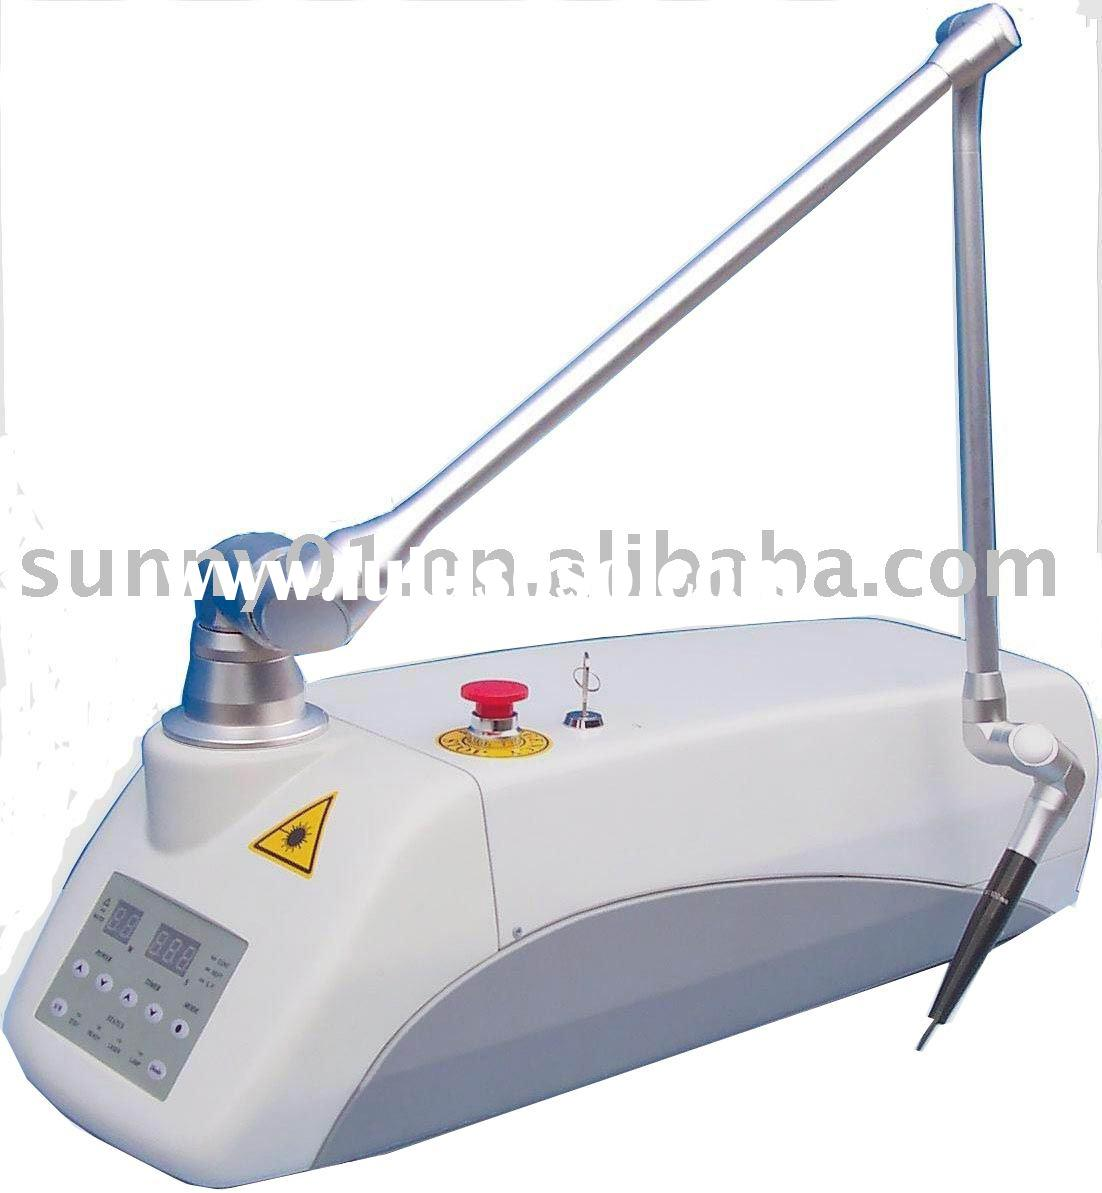 Vet CO2 Laser Treatment Machine(medical use)